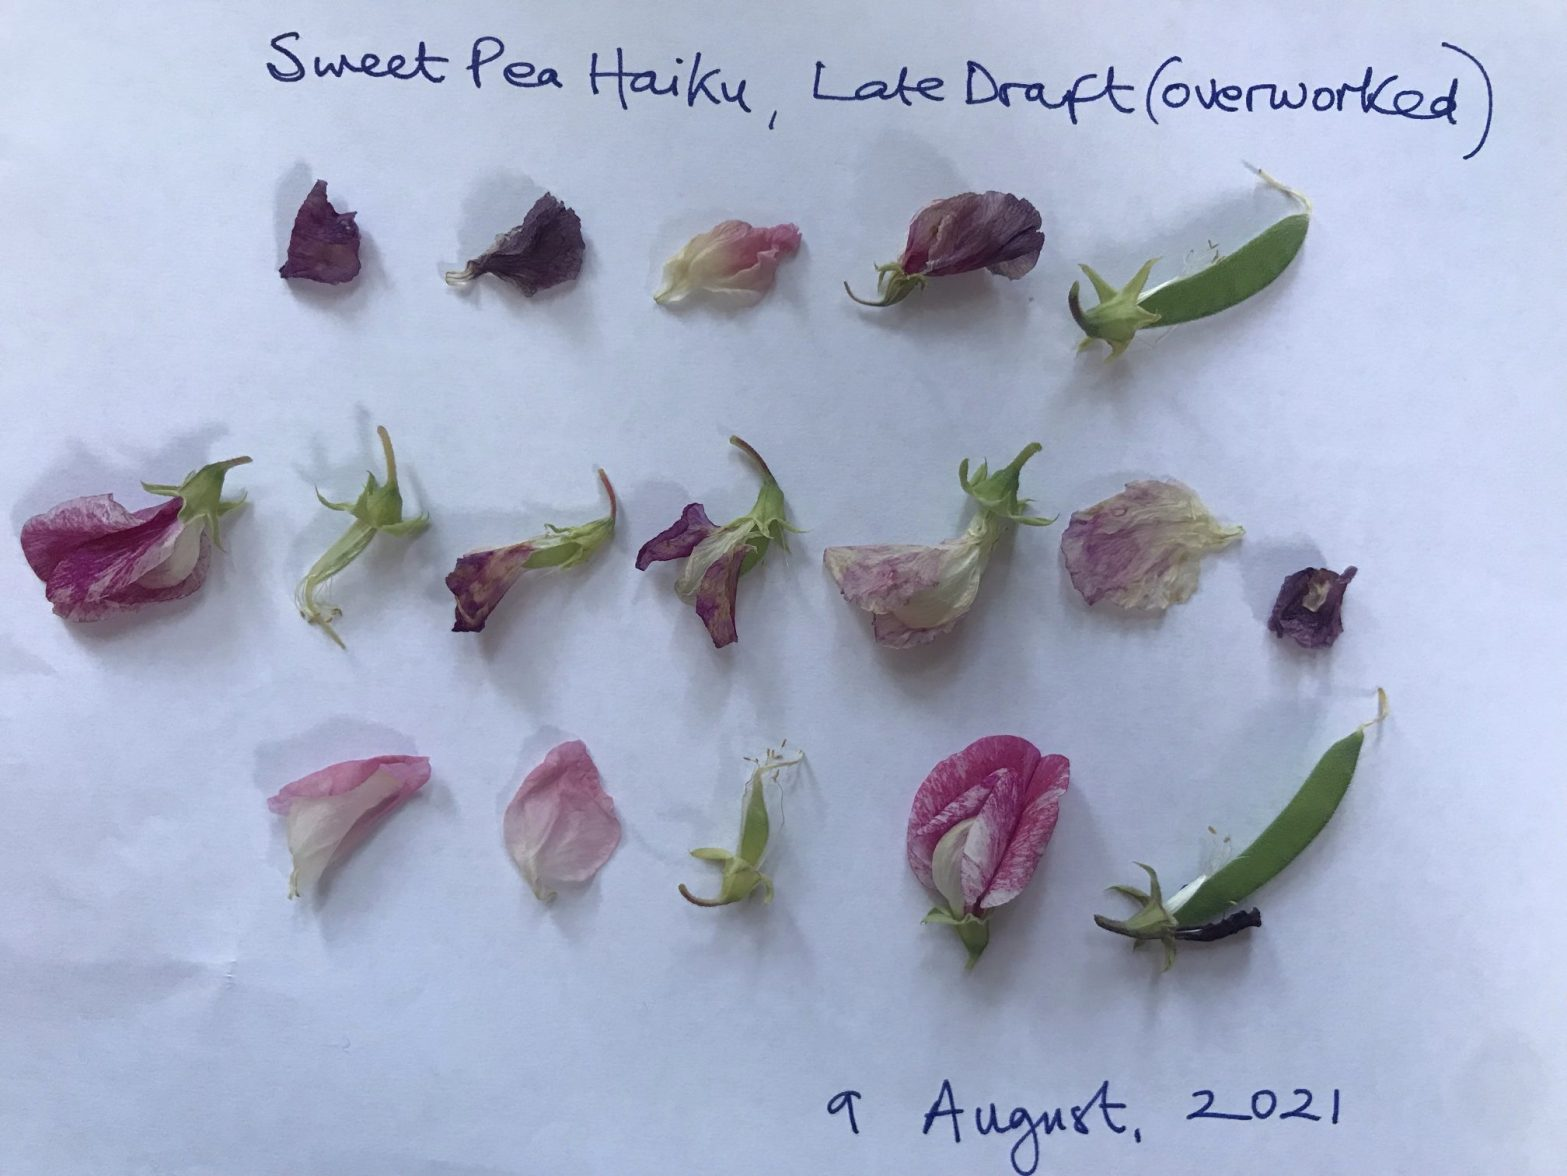 The image is of sweet pea petals arranged in three lines as a haiku, with each petal representing a syllable. There are five syllables, seven syllables, five syllables. The final syllables on the first and third lines are inedible sweet pea beans. The text reads 'Sweet Pea Haiku, Late Draft (Overworked).